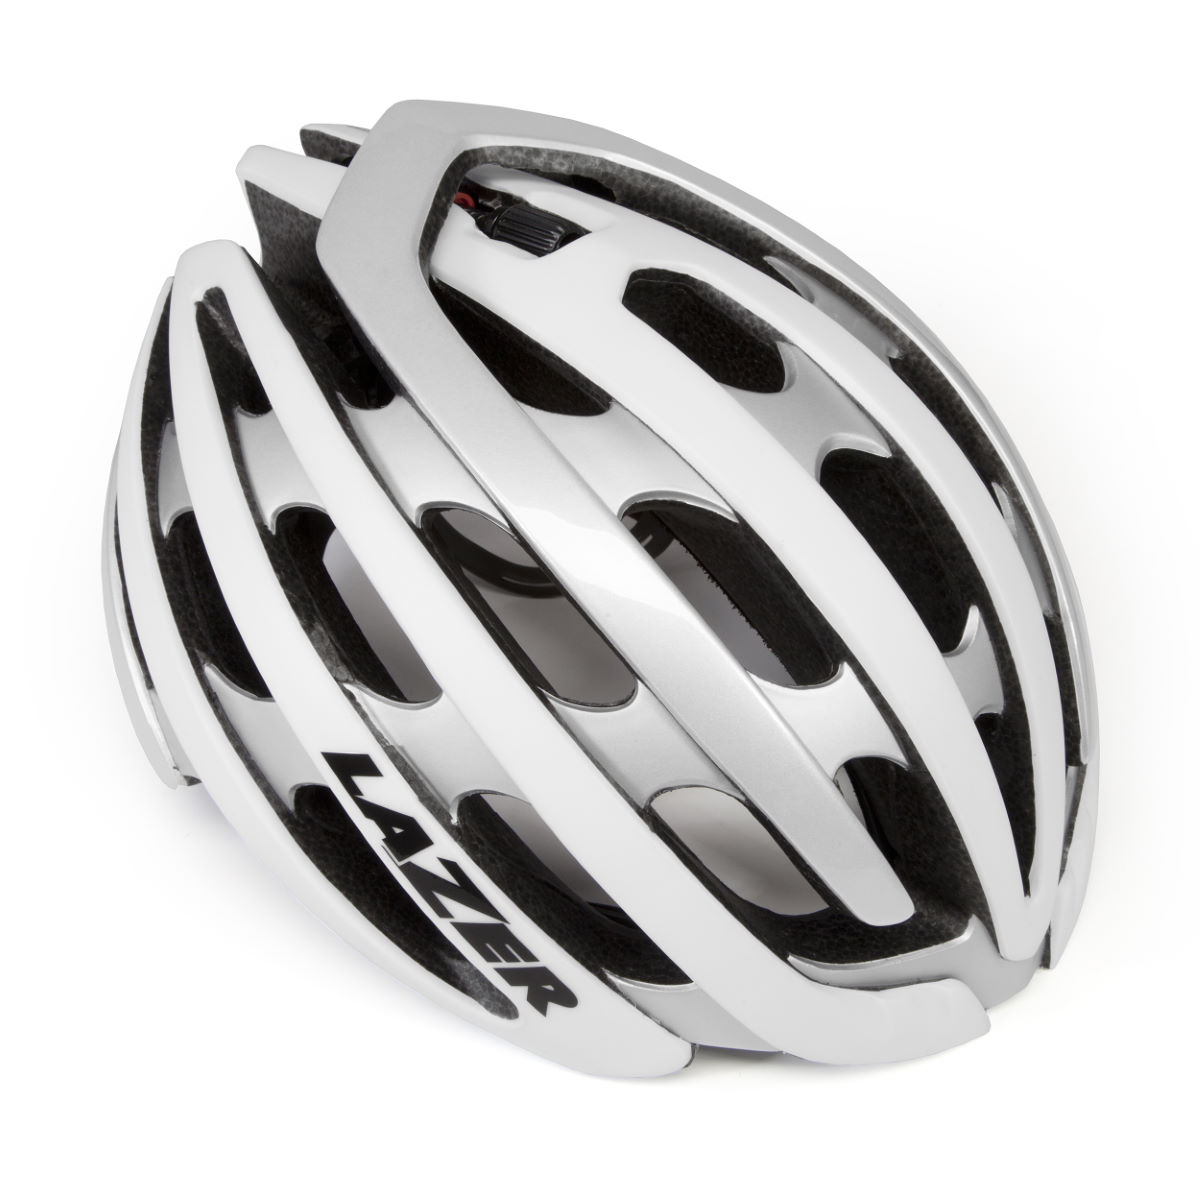 Lazer Z1 with British Cycling Aeroshell Helmet